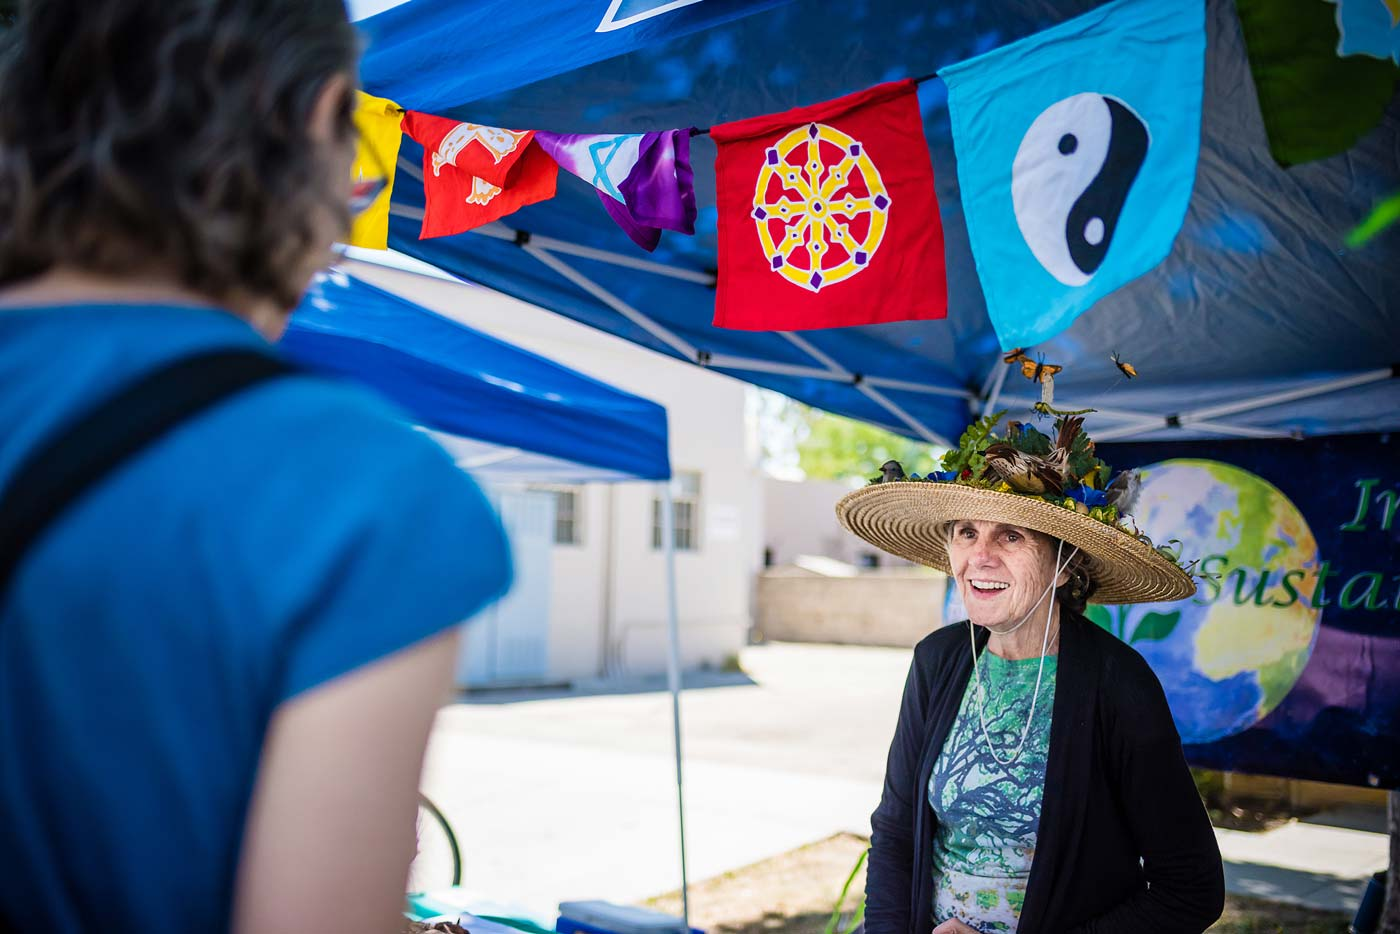 sClaremont-Earth-Day-2016-59.jpg